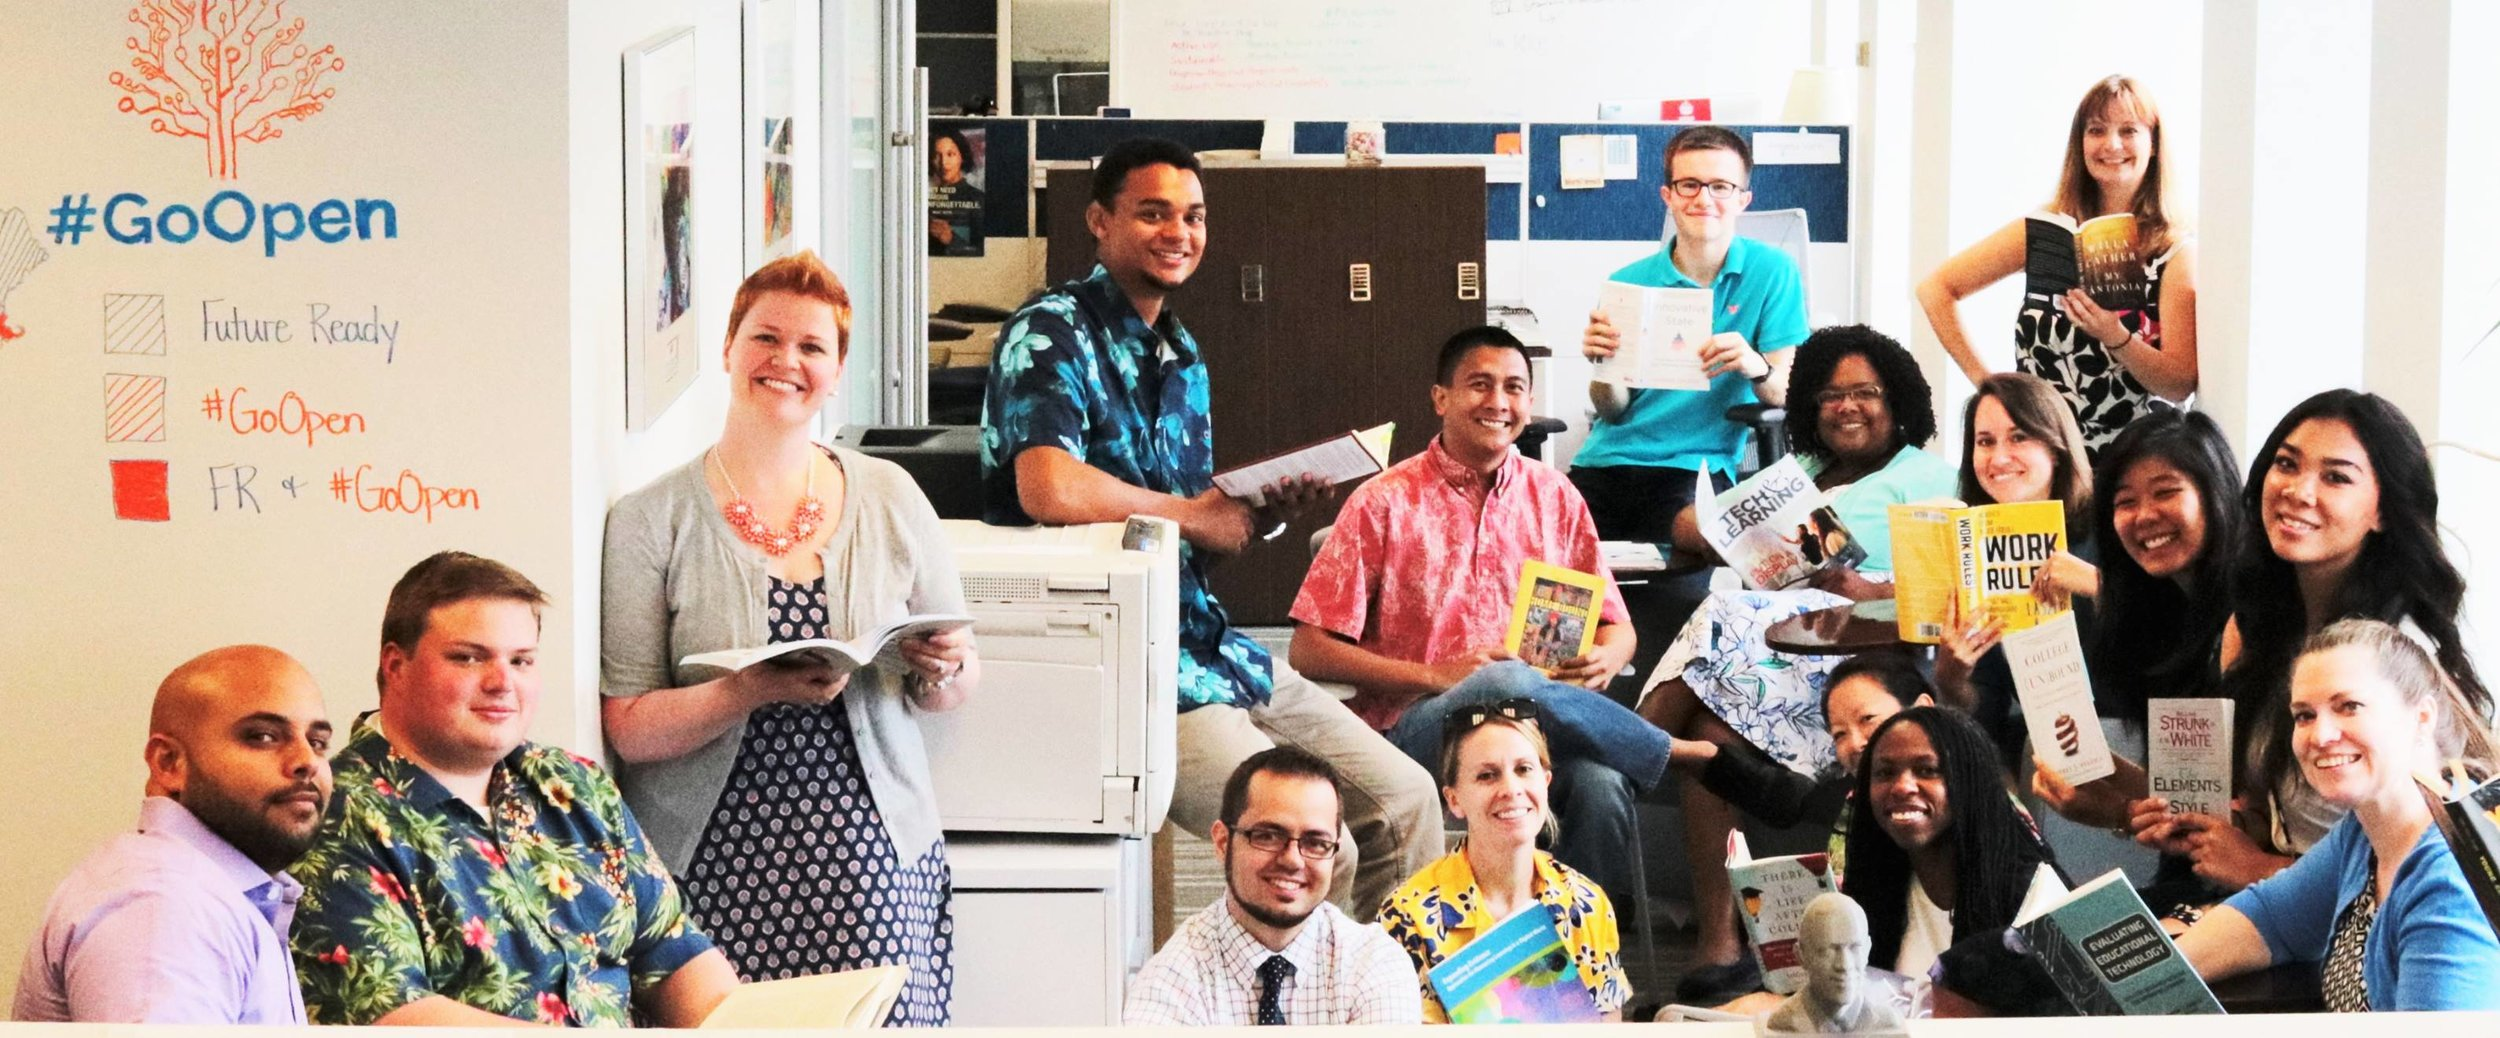 James and the team at the U.S. Department of Education participating in the #ReadWhereYouAre campaign.